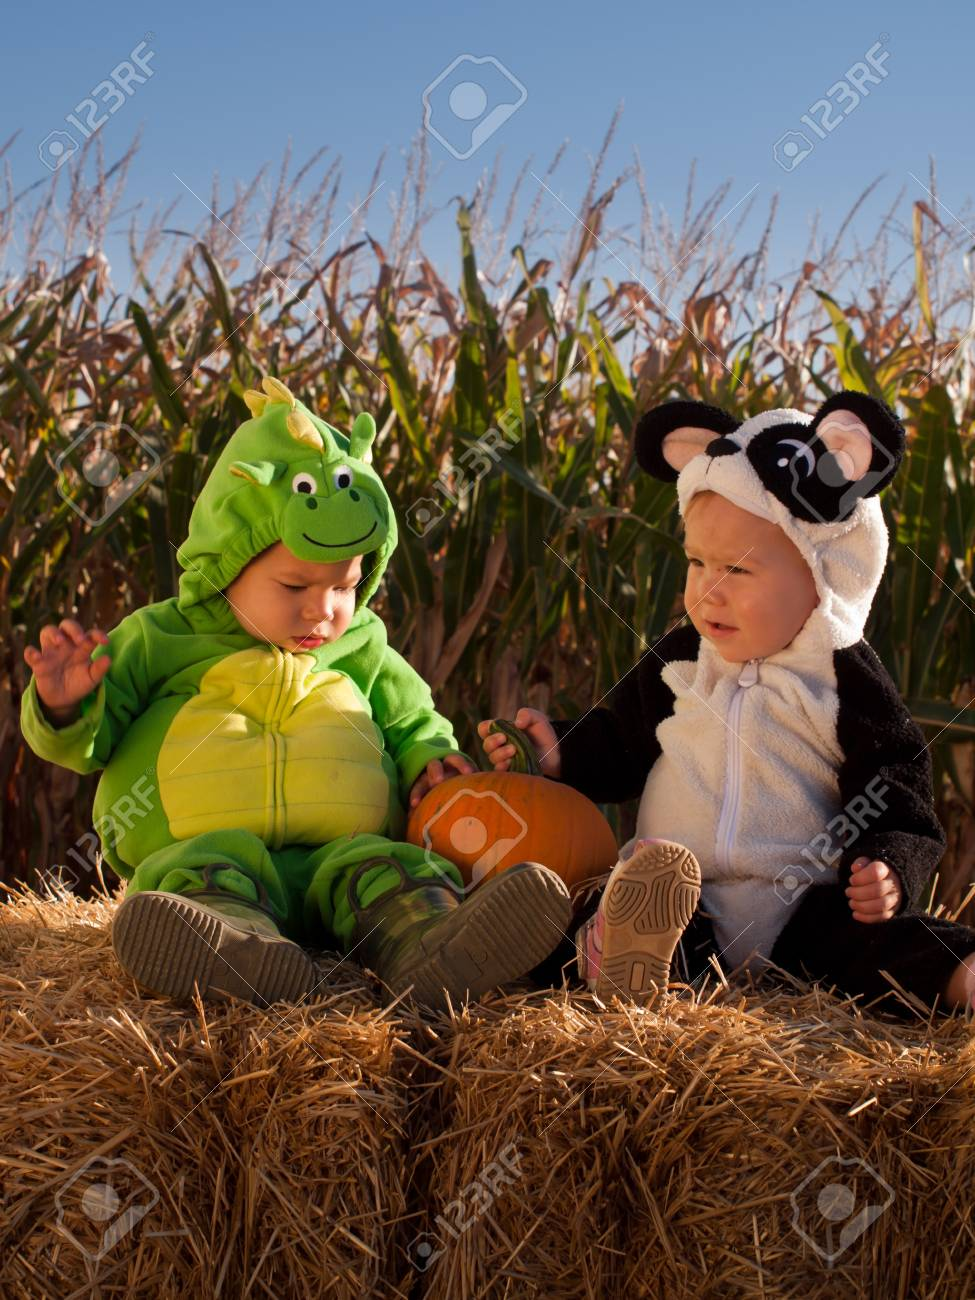 Toddlers dressed up in cute costumes at the pumpkin patch. Stock Photo - 10807197